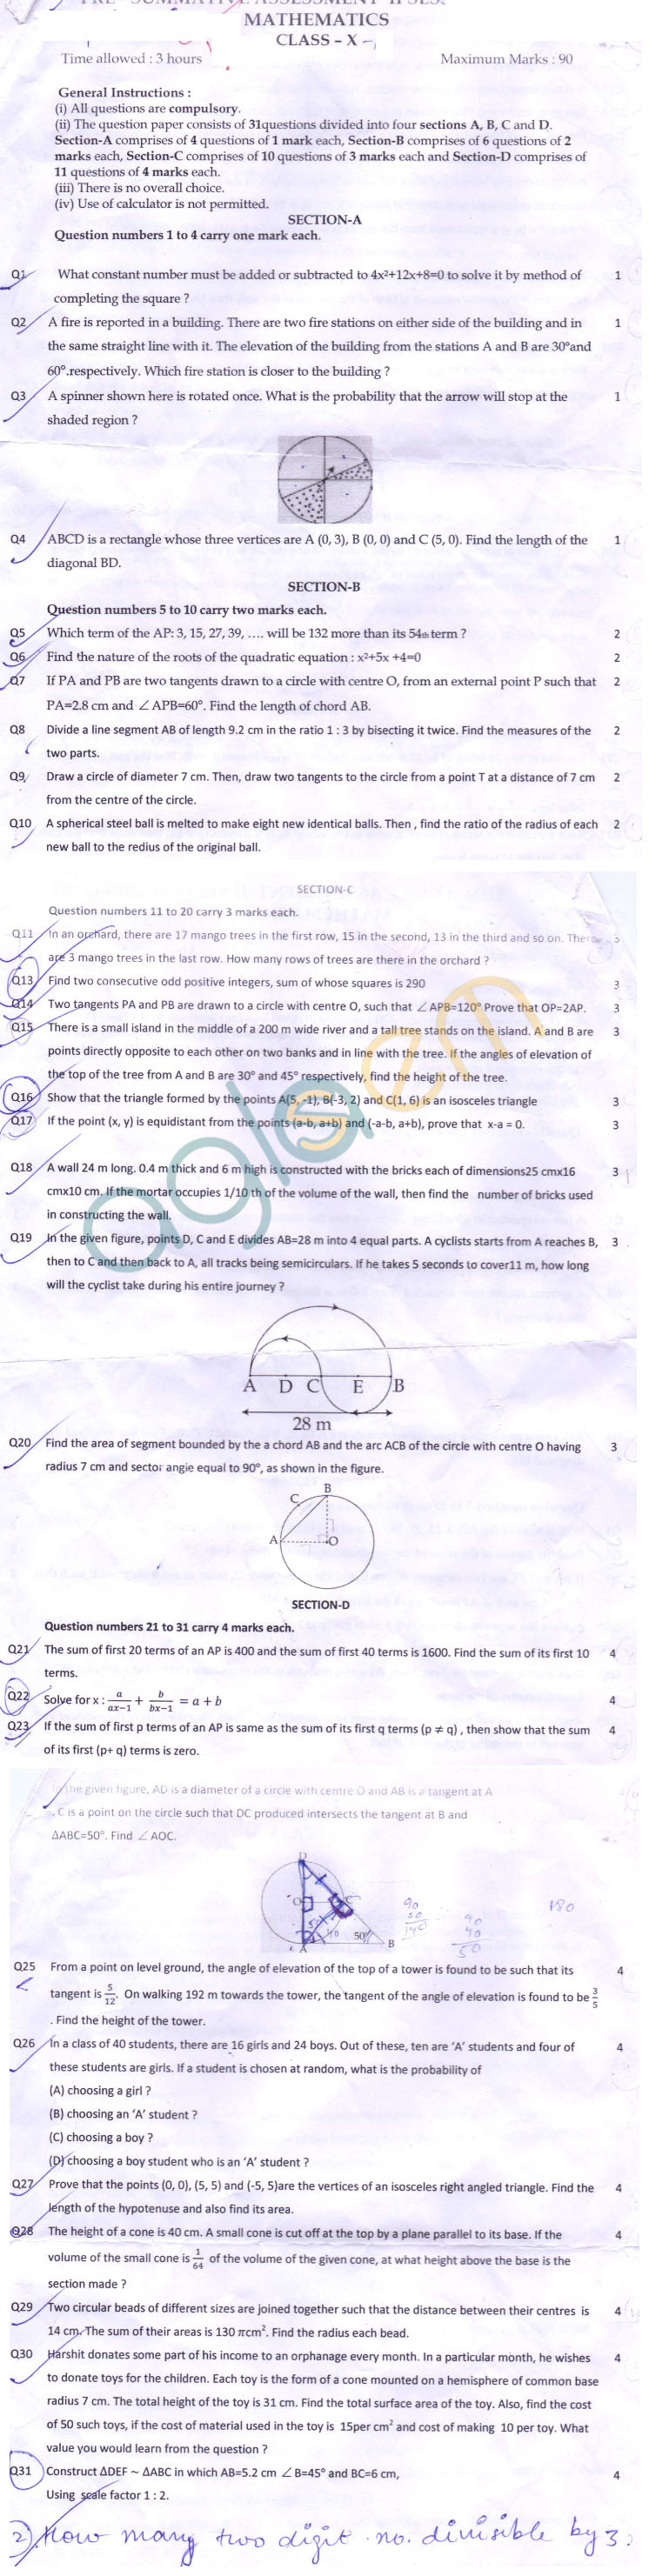 CBSE Class 10 Question Paper Maths (SA2)